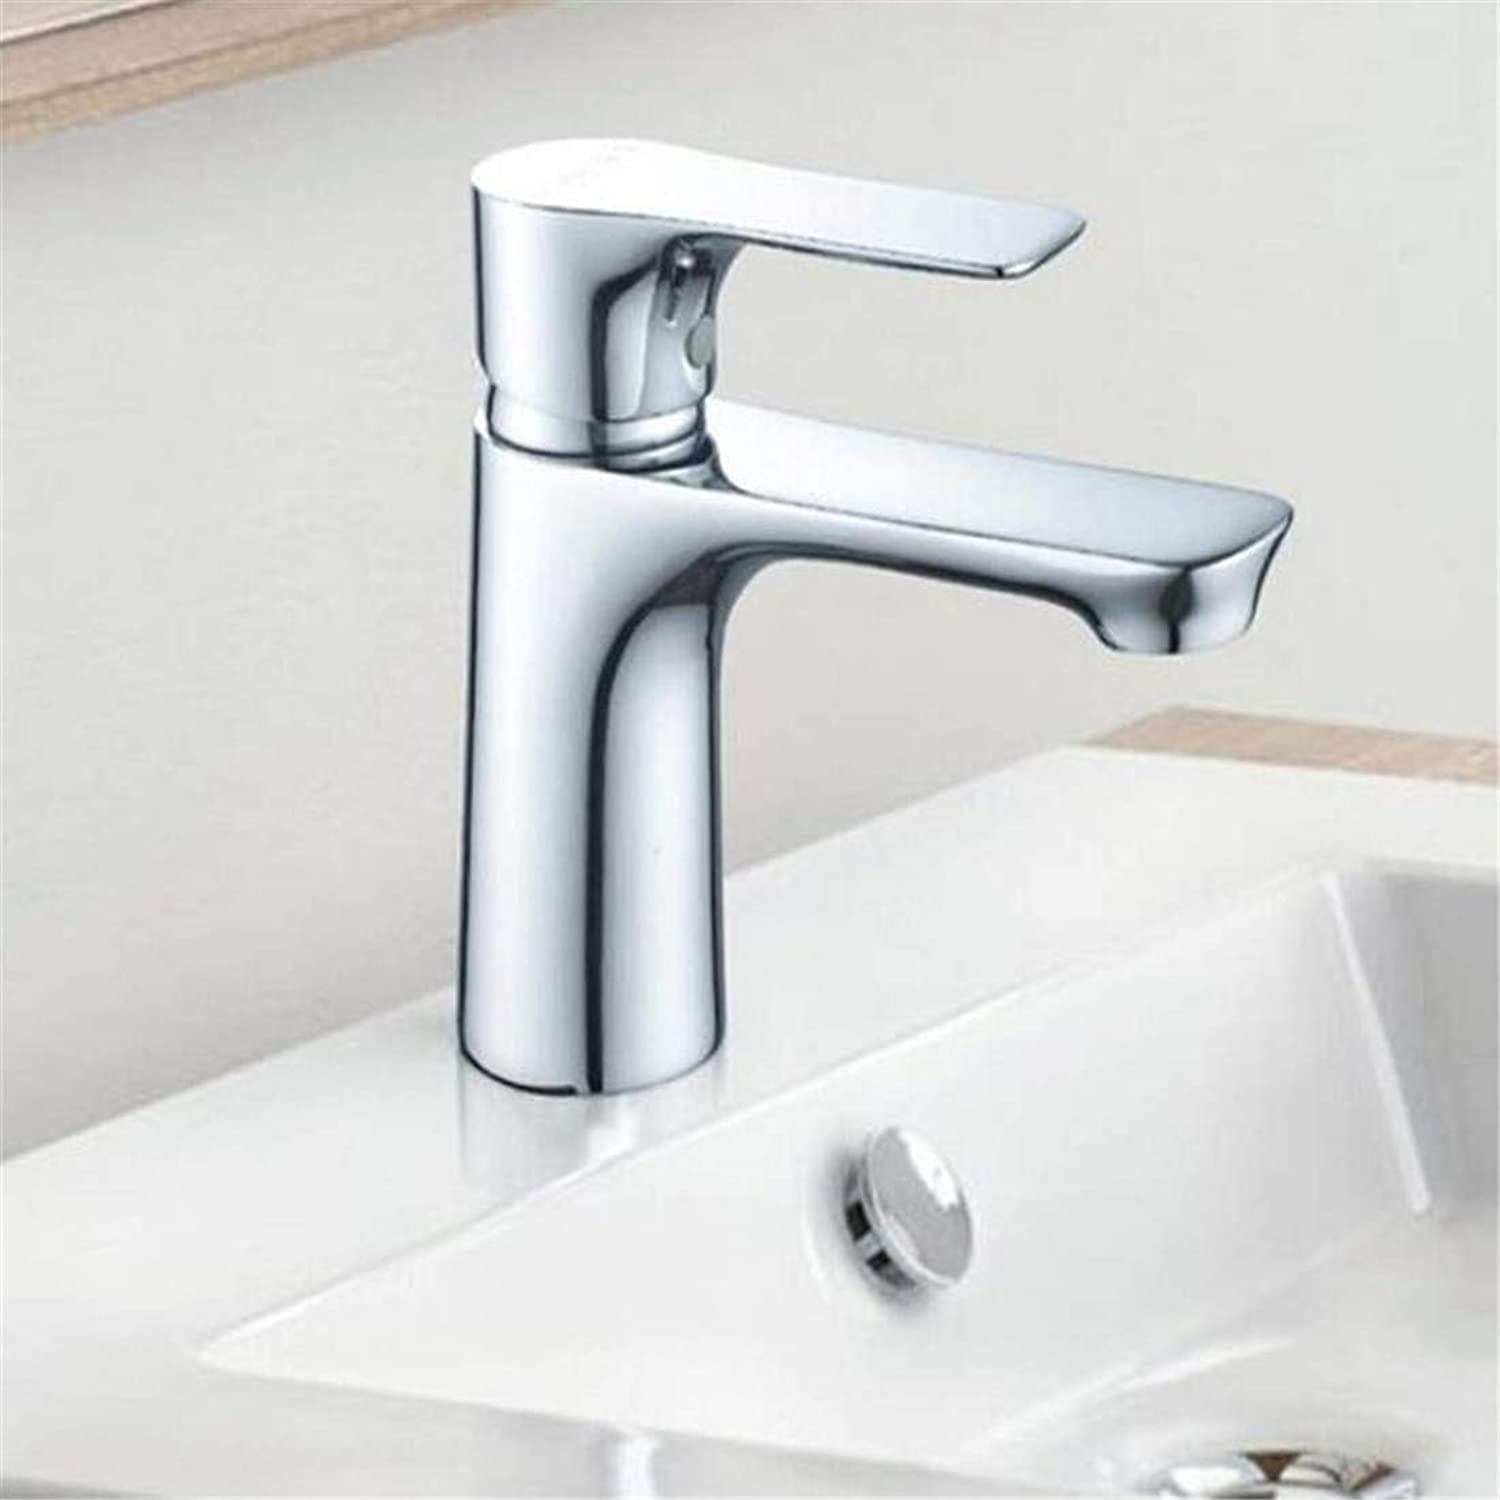 Faucet Vintage Plated Deck Mounted Faucet Faucet Washbasin Mixer Sanitary Ware Cold and Hot Touch Faucet Basin Mixer Single Handle Mixer Tap Faucet